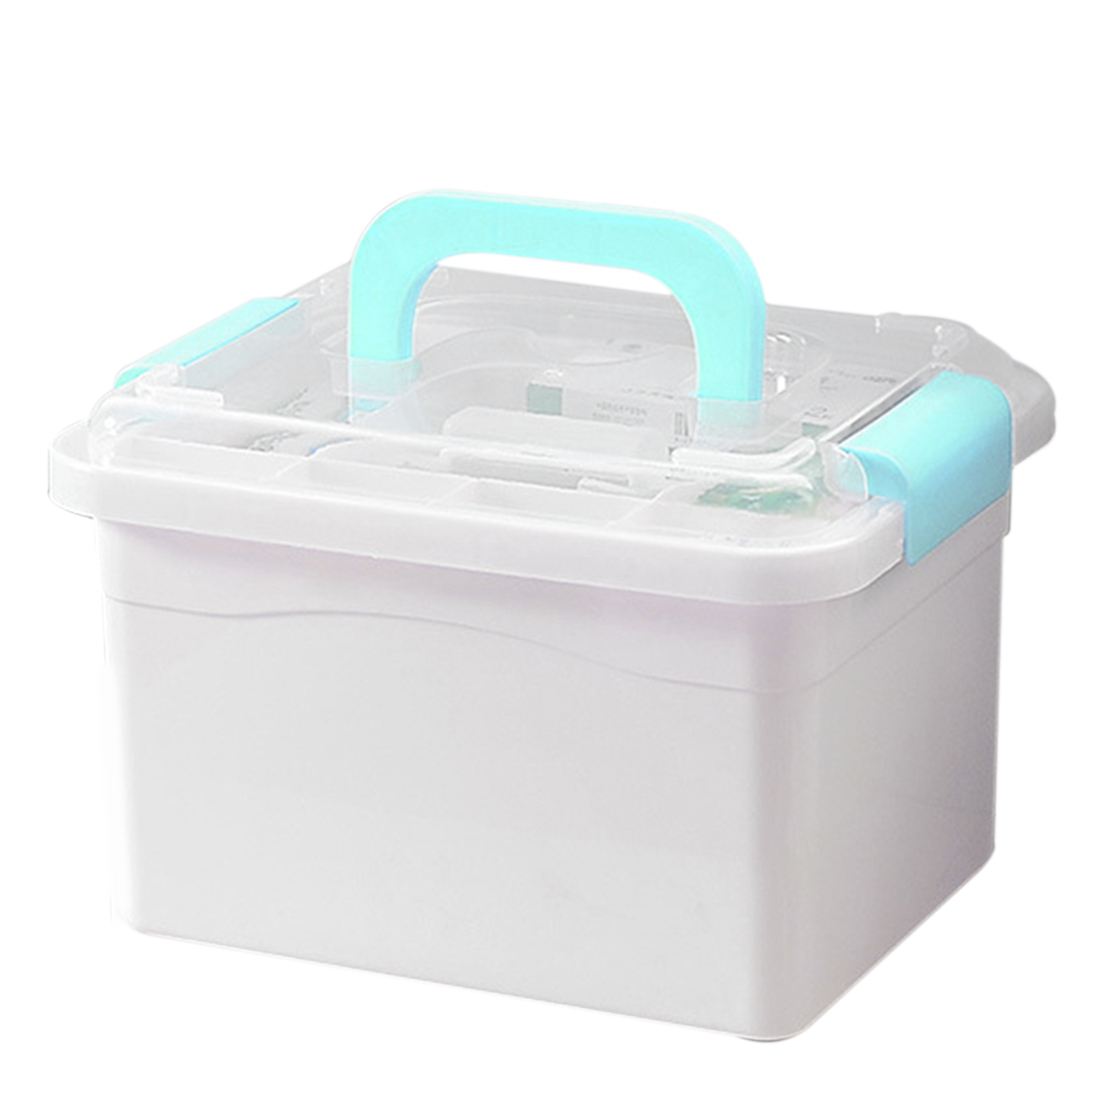 HIPSTEEN Family Multi-Functional First Aid Kit Medicine Storage Box Support  Home Office Storage Container Organizer- L